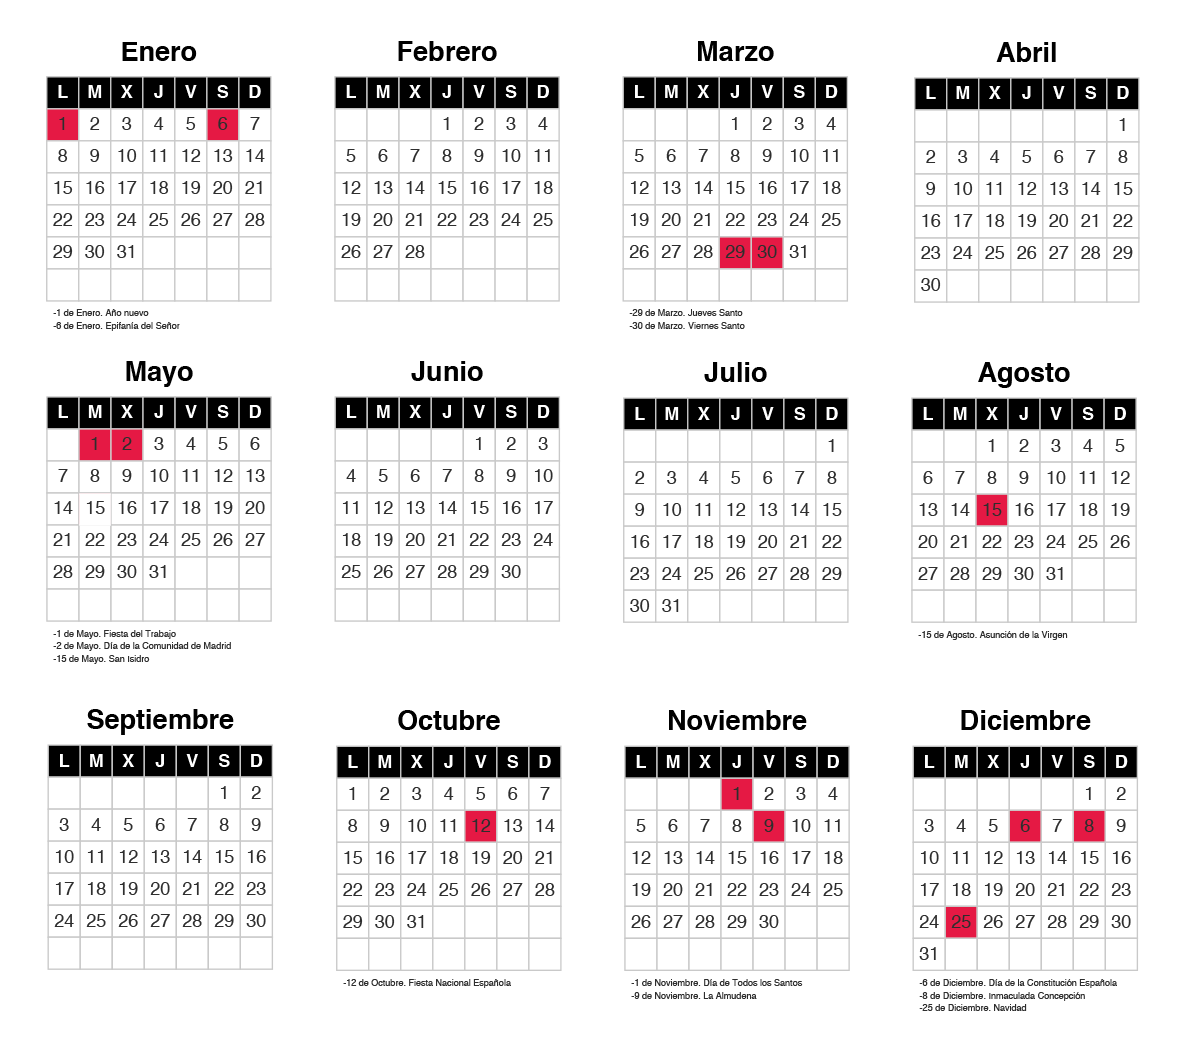 Calendario laboral de la comunidad de madrid forislex for Calendario eventos madrid